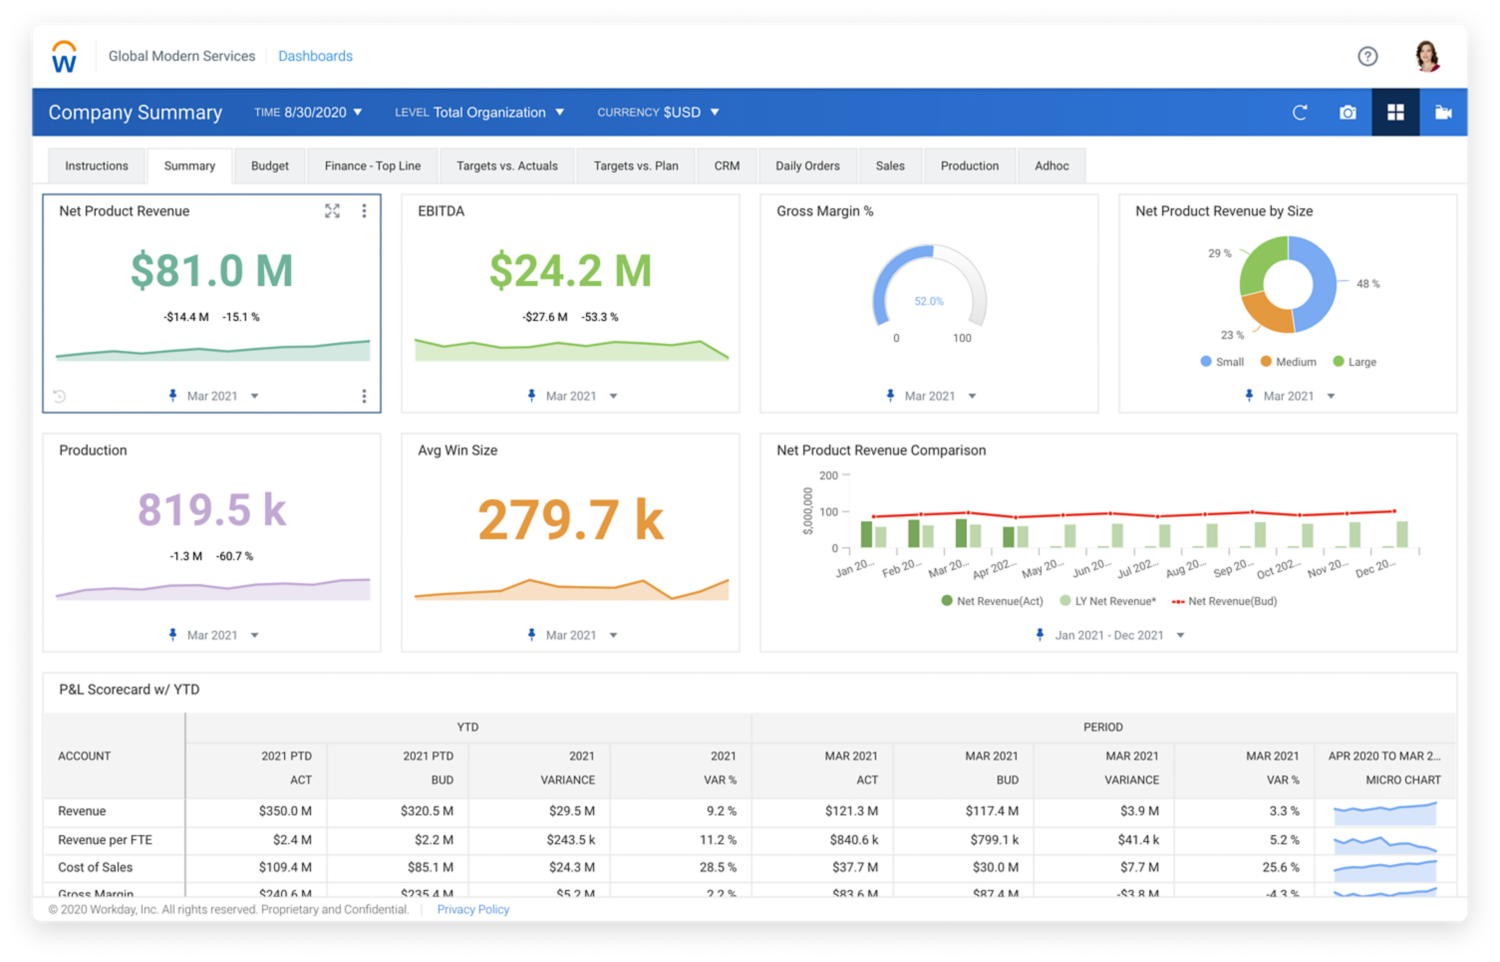 Top Lines dashboard showing bar graphs and numerical values for net revenue, EBITDA, and PP&L Scorecard.